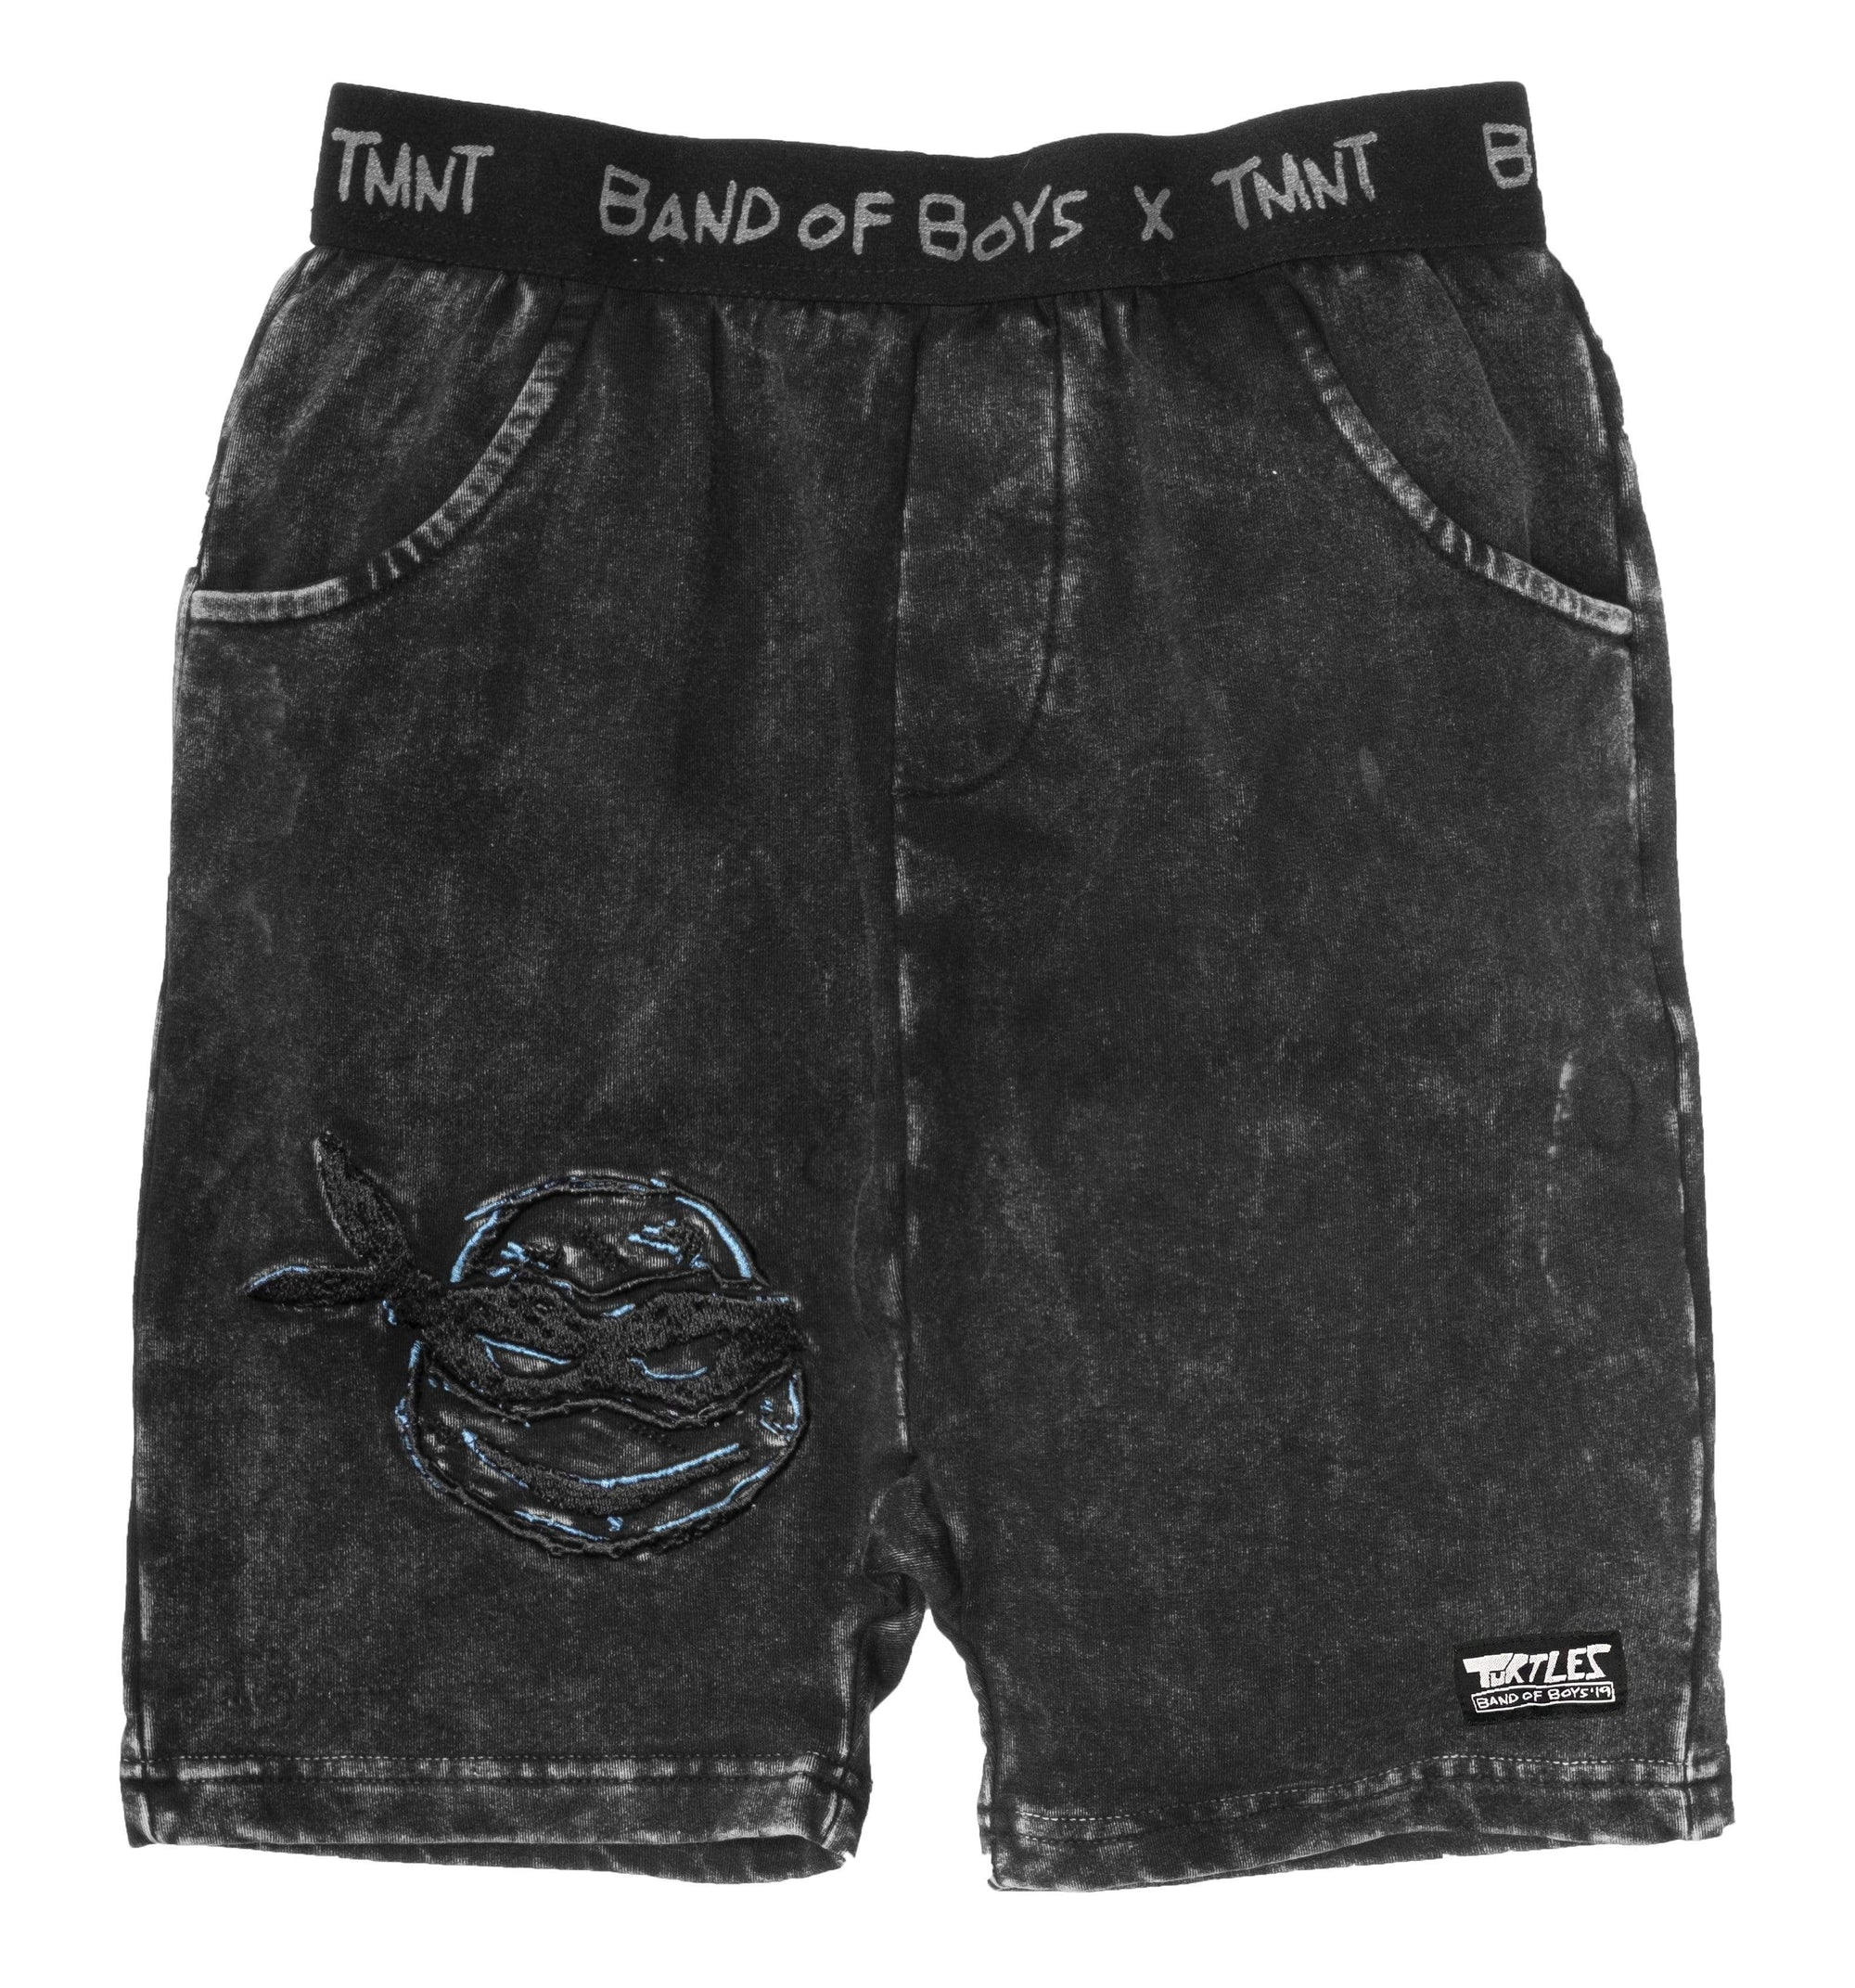 Band of boys Shorts 2 BOB X TMNT Turtle Face Short - Vintage Black